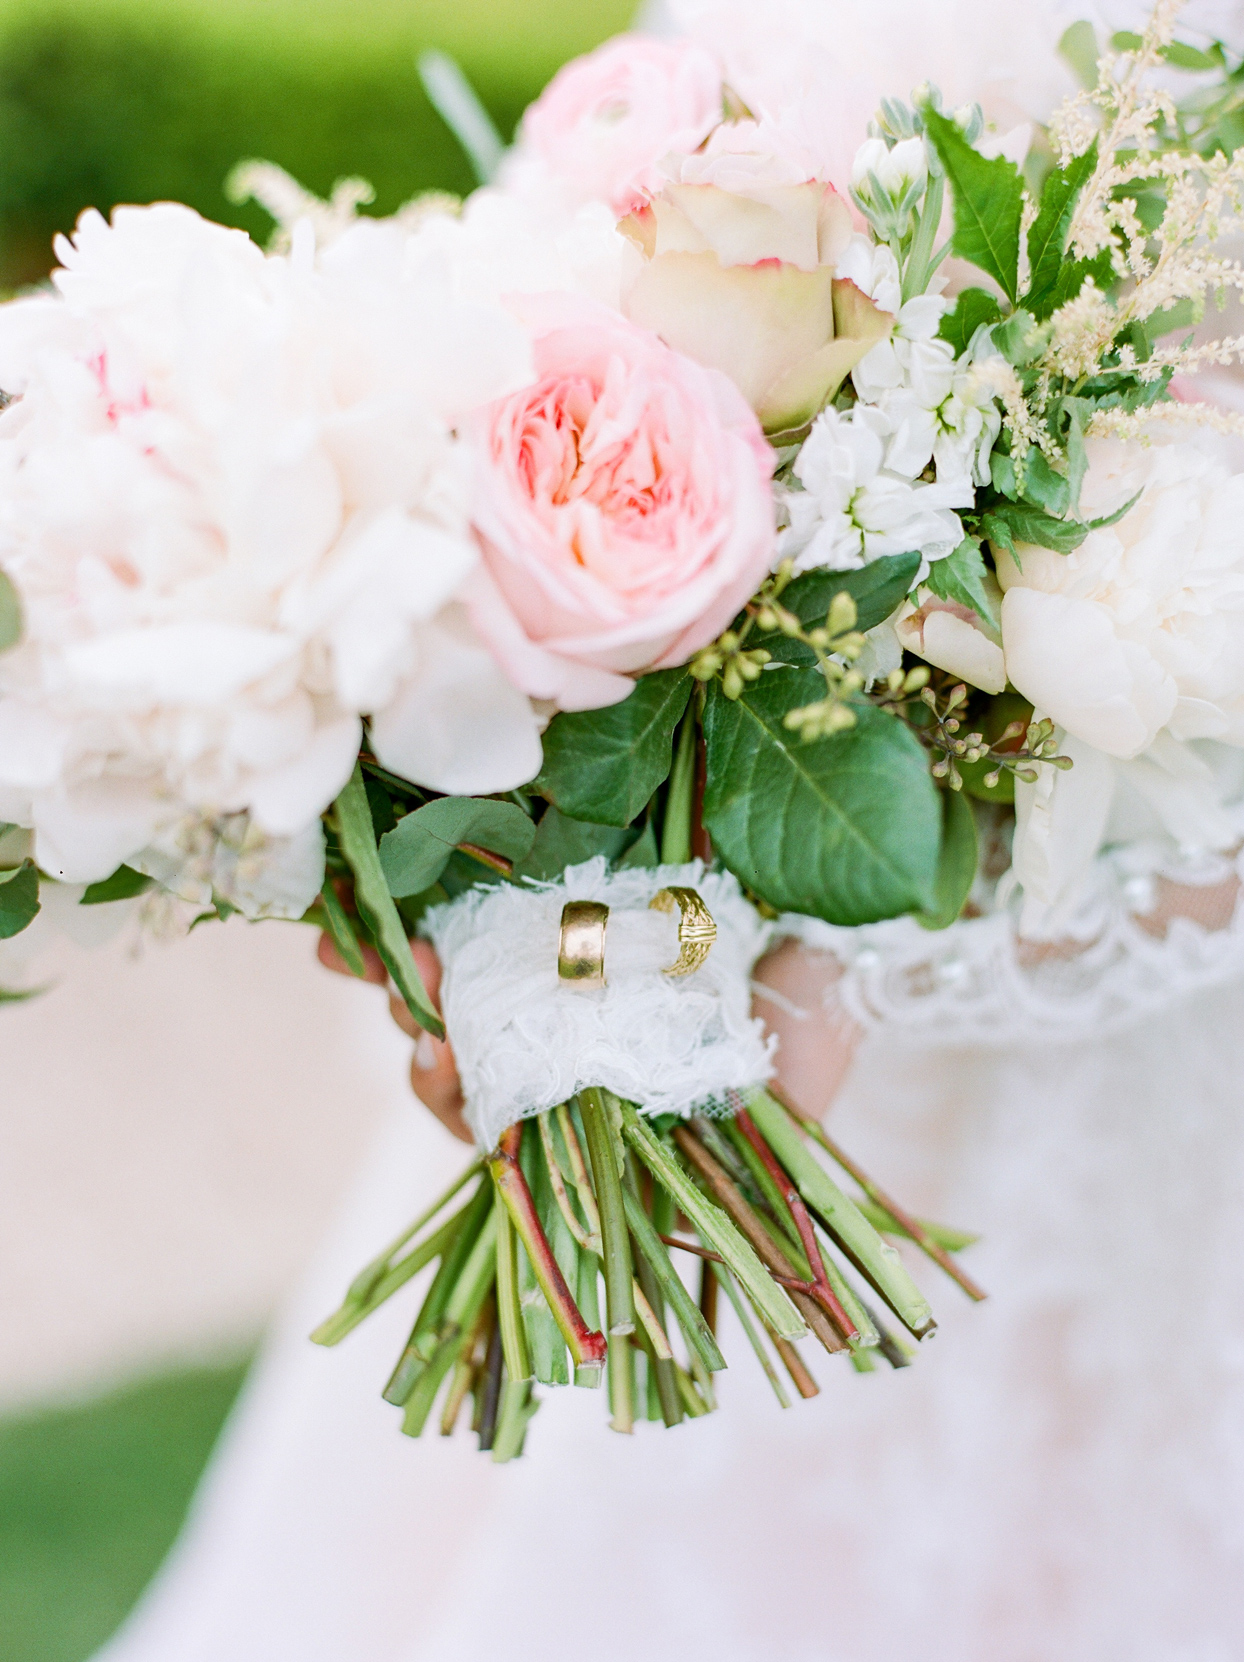 gold wedding rings on bouquet